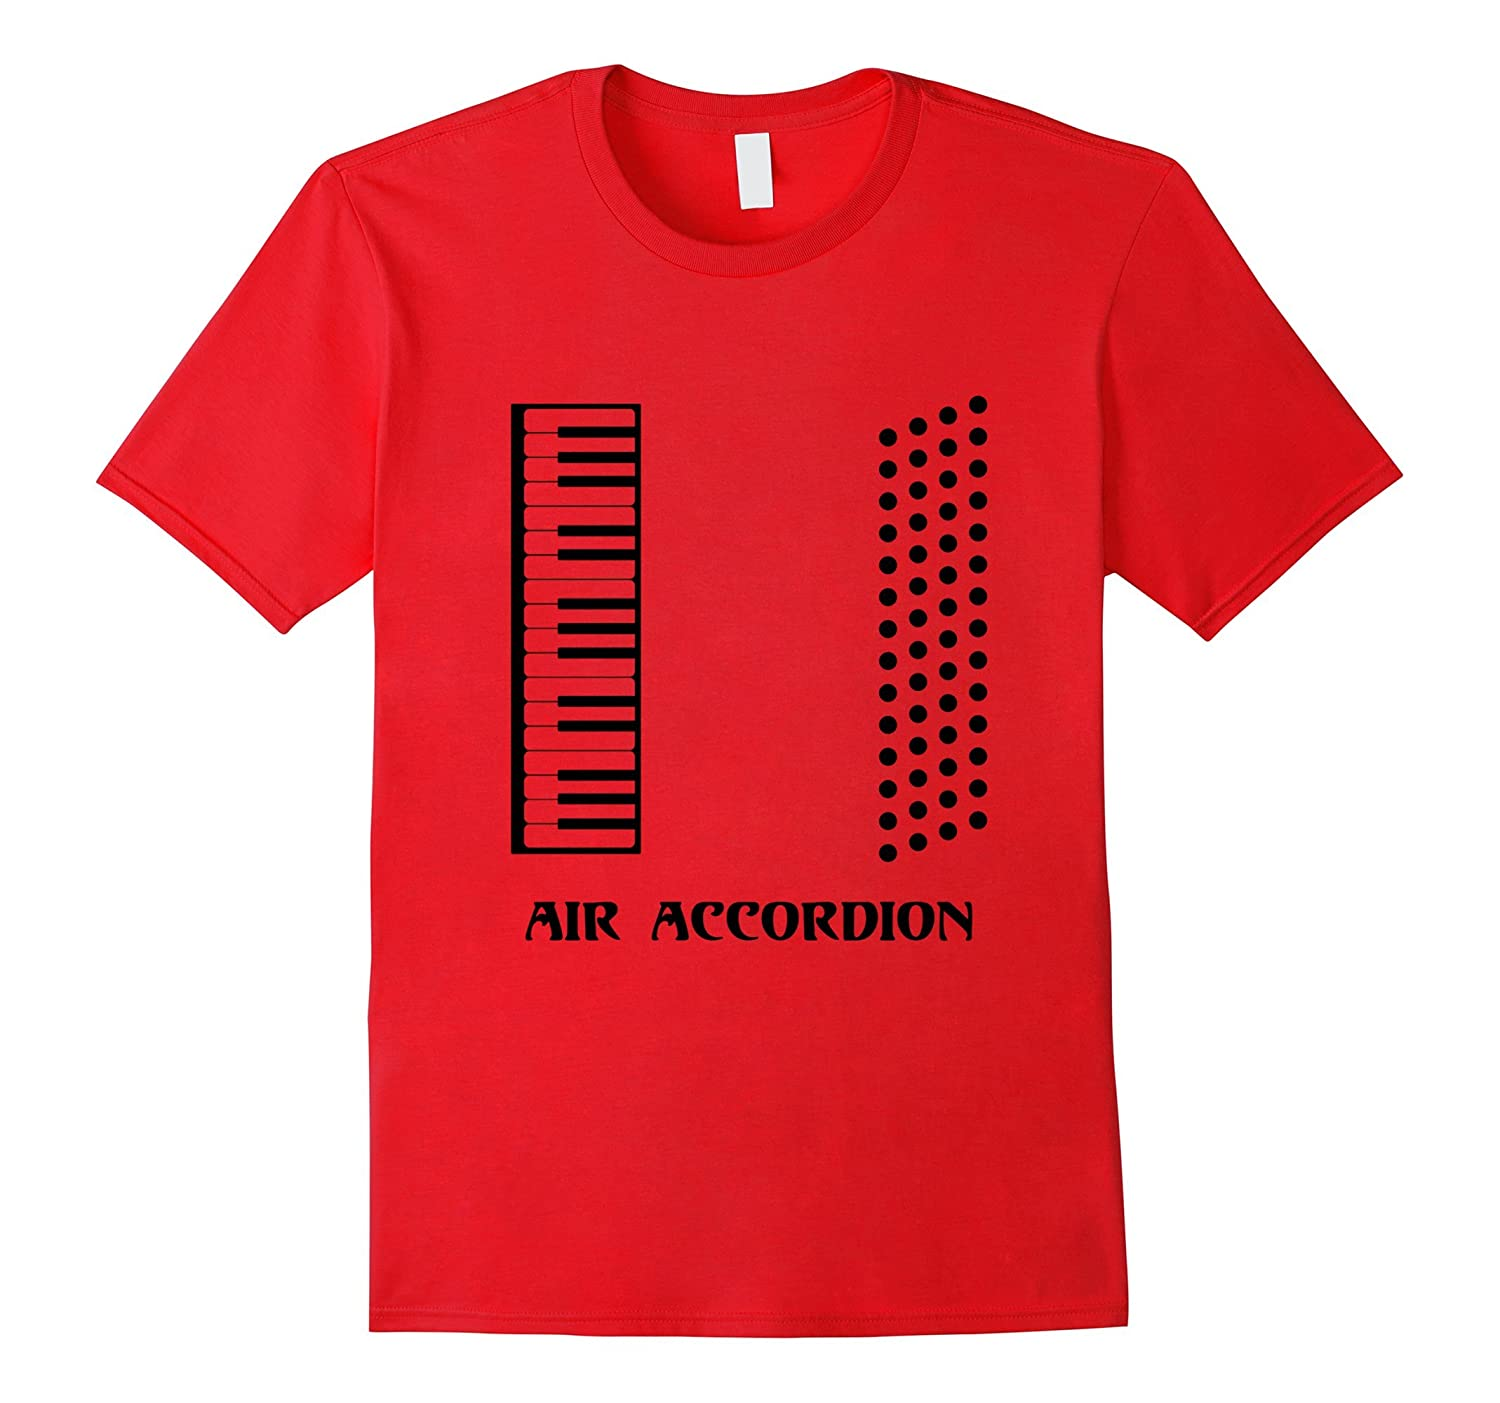 eeee010f Funny Air Accordion T-shirt Musical Instrument Band Quote-PL – Polozatee